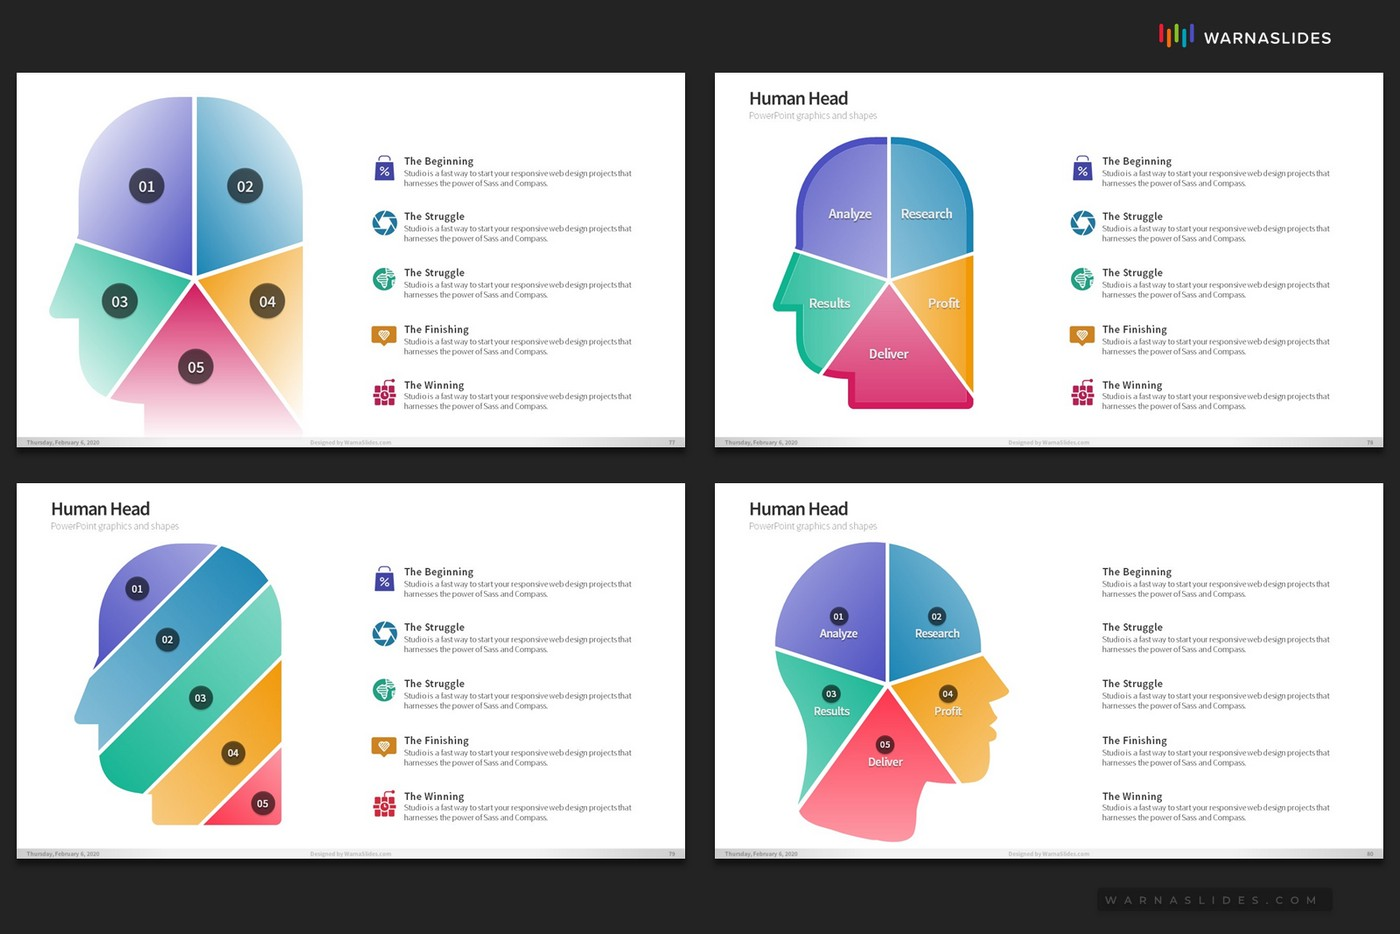 Human-Head-Ideas-Brainstorm-PowerPoint-Template-for-Business-Pitch-Deck-Professional-Creative-PowerPoint-Icons-016